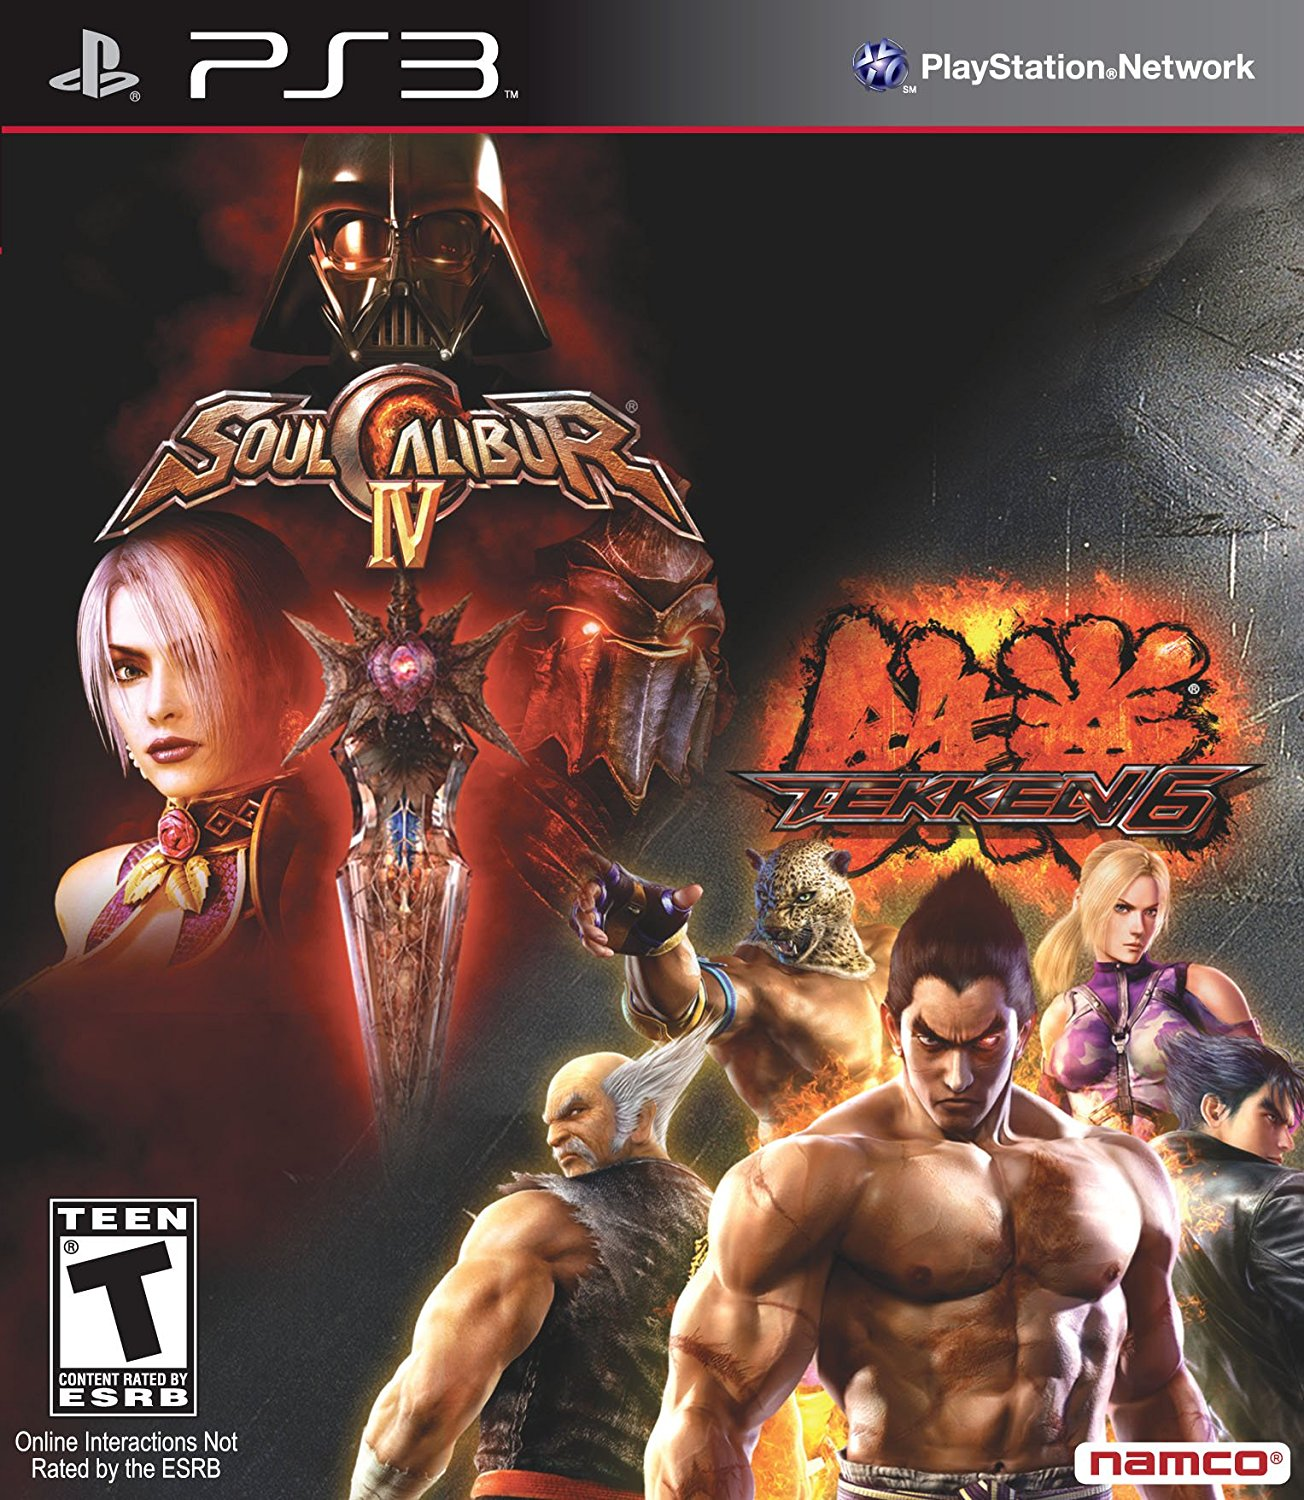 Buy Playstation 3 Tekken 6 Soul Calibur Iv Bundle Estarland Com